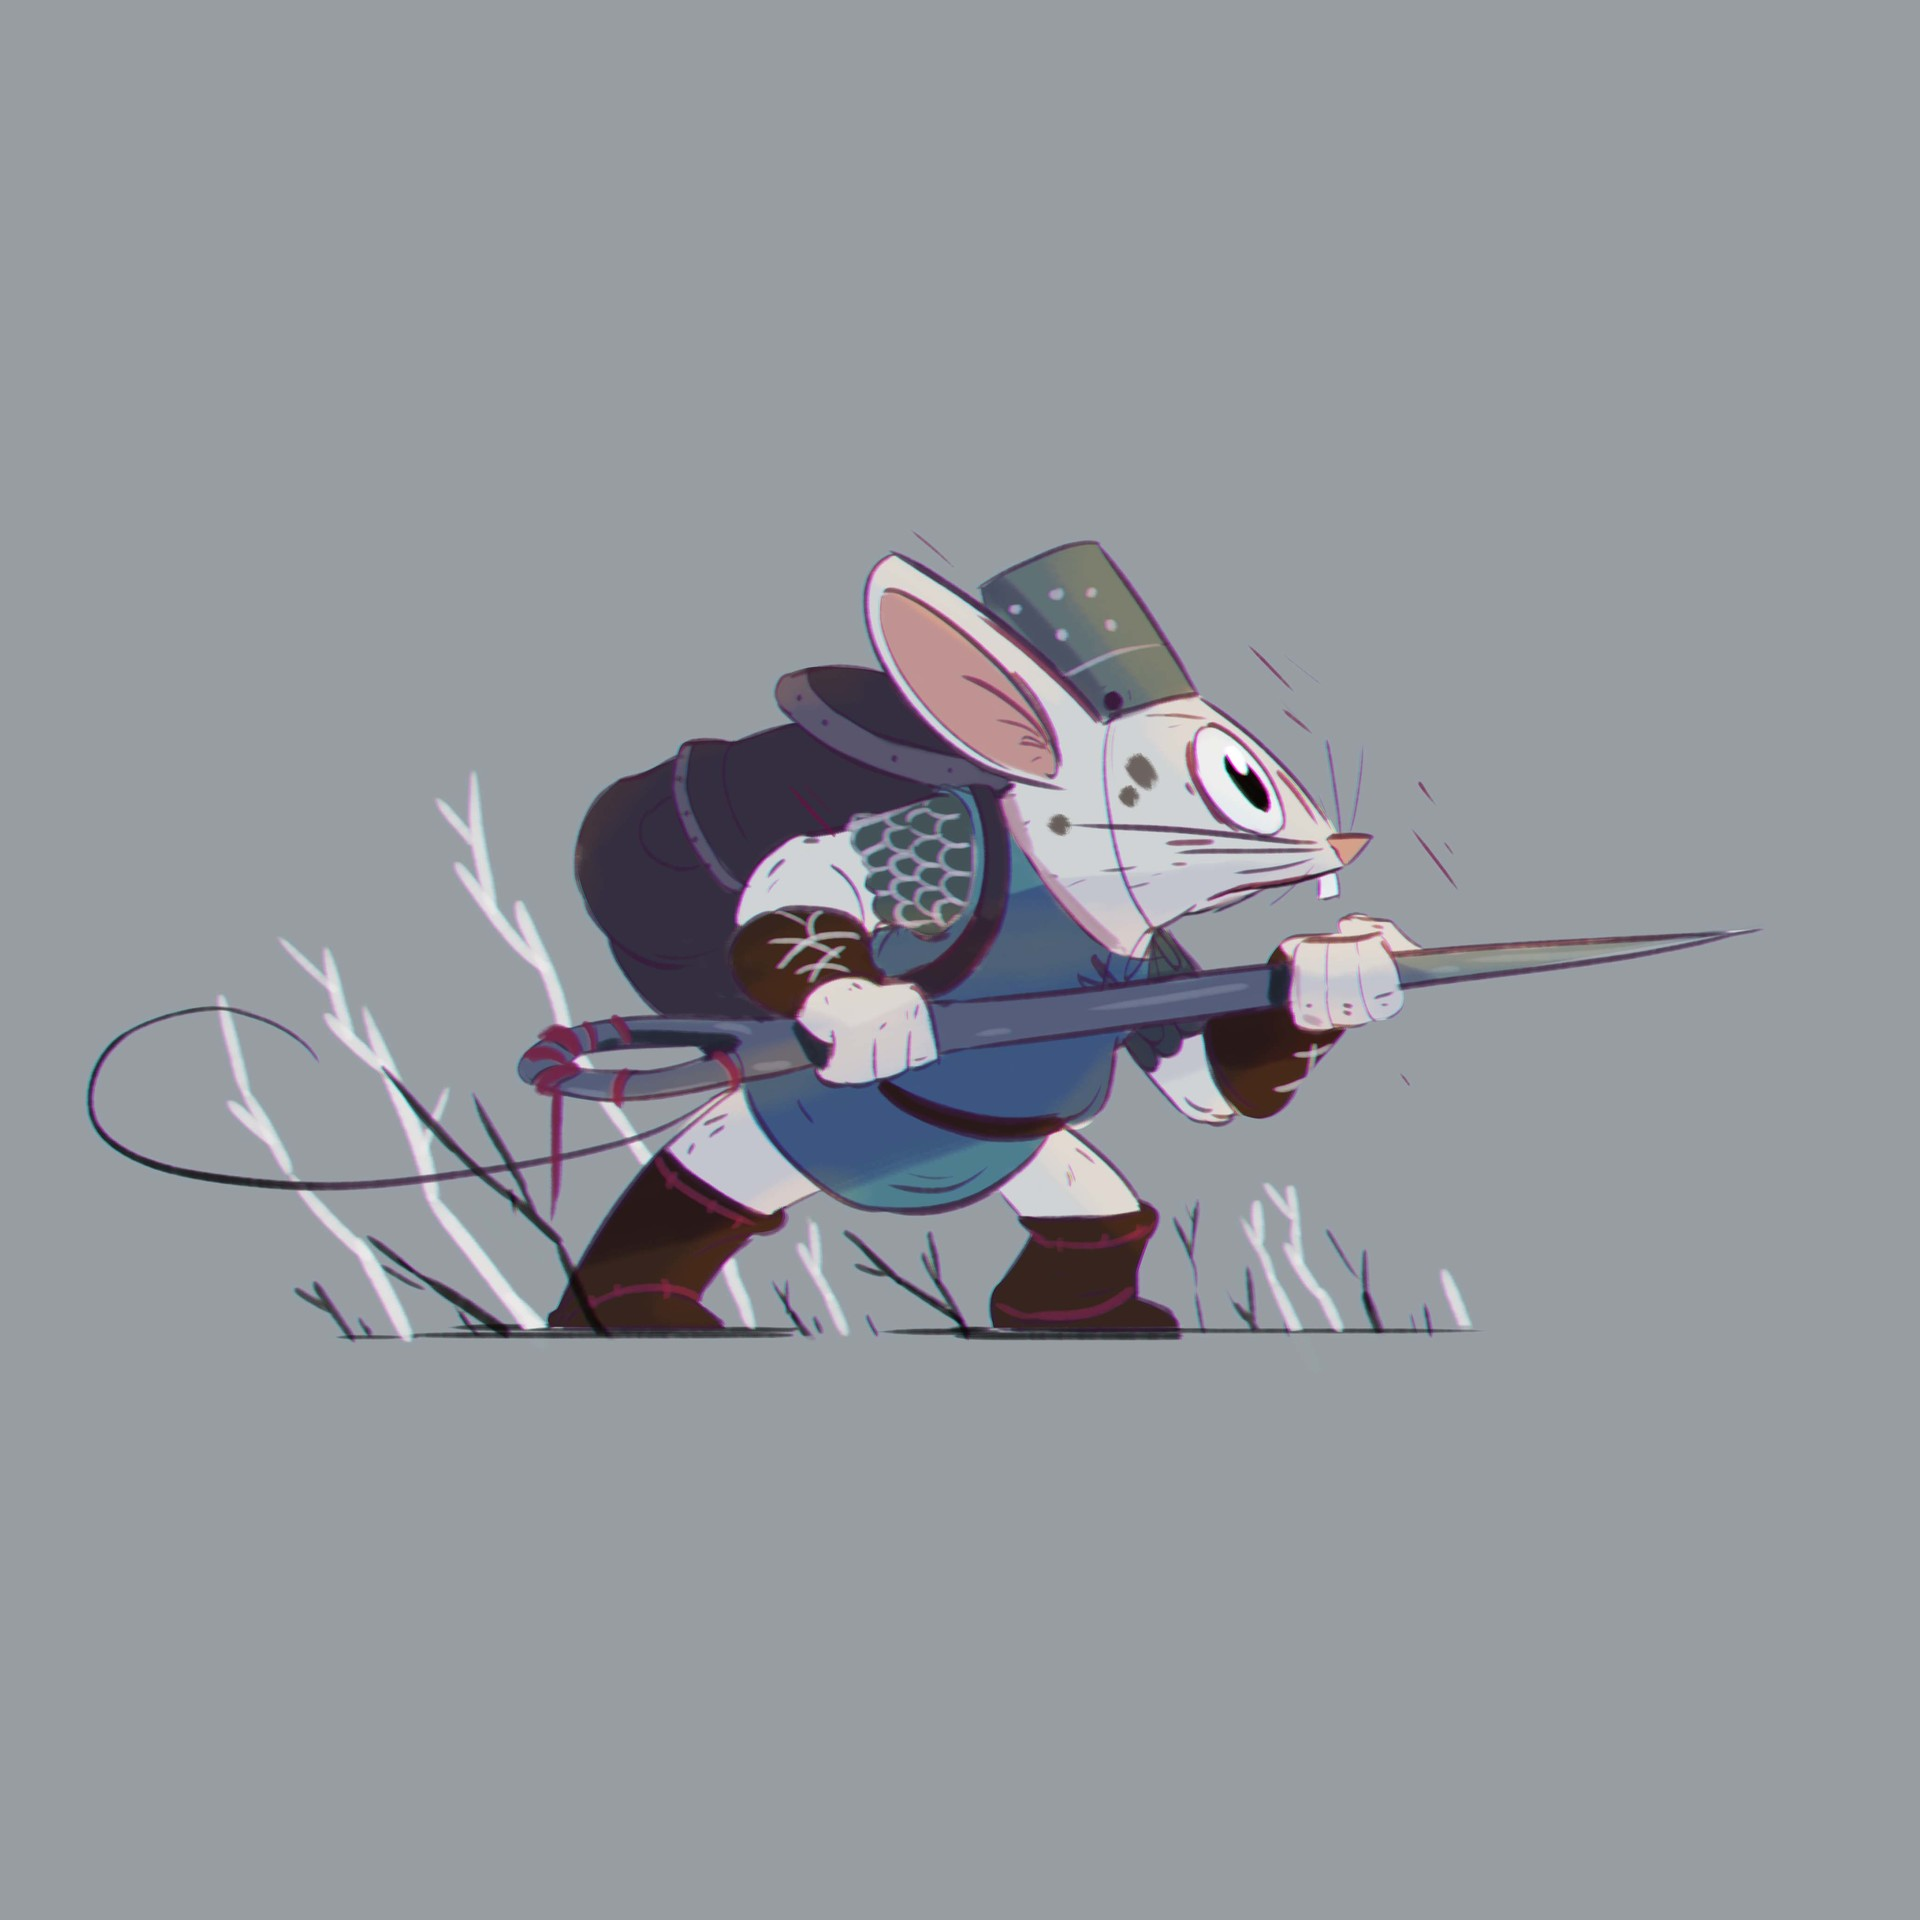 Pablo broseta mouse warrior2